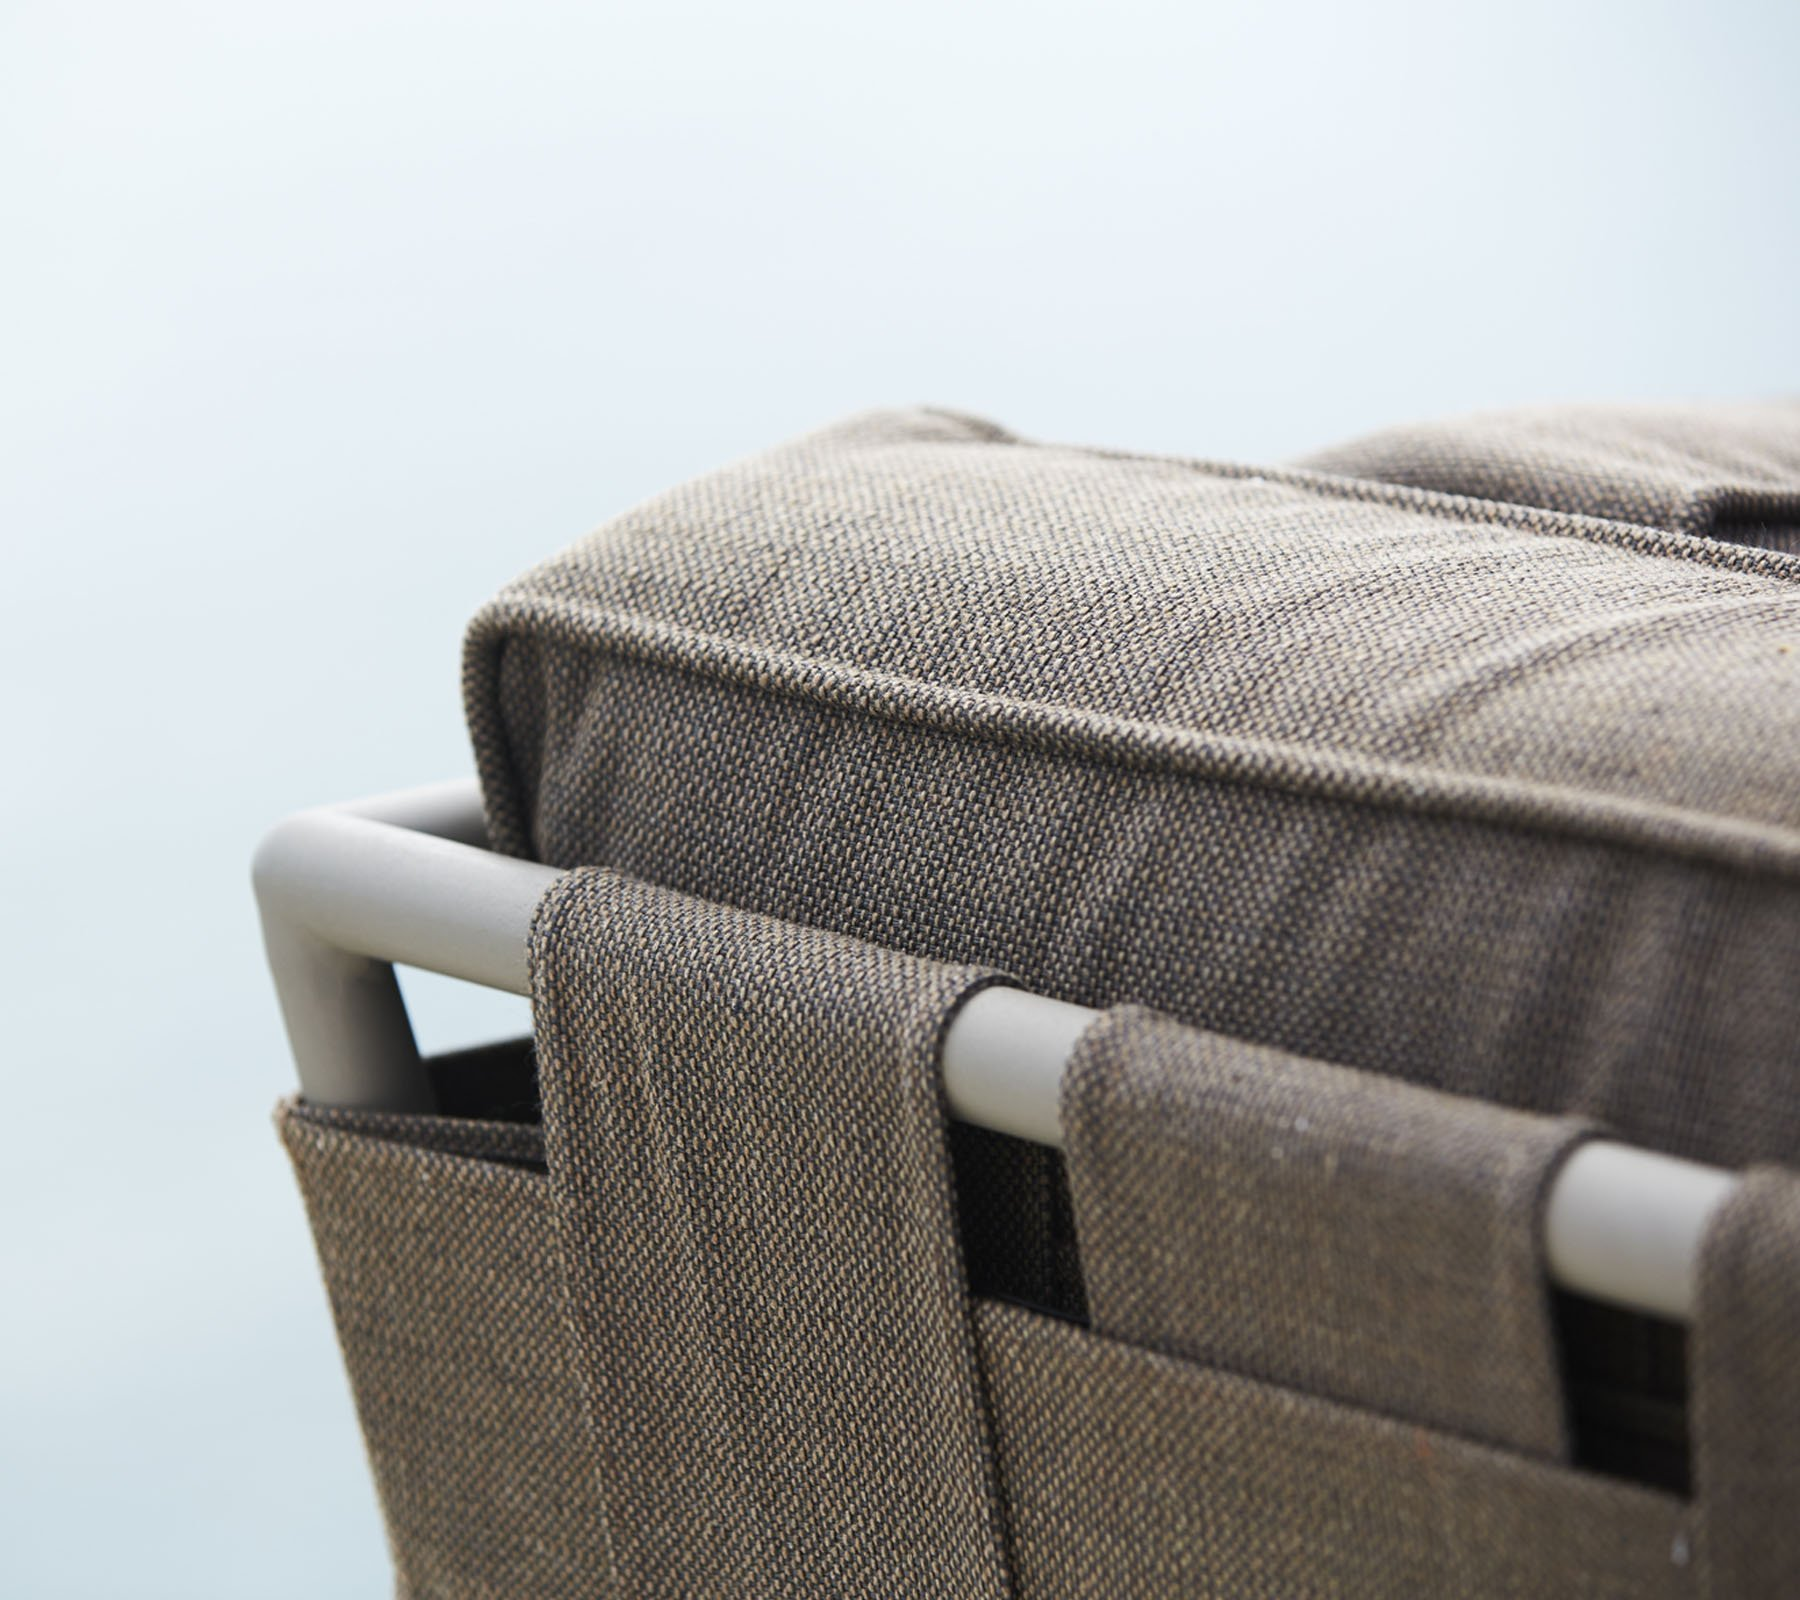 Conic Lounge Chair from Cane-line, designed by Foersom & Hiort-Lorenzen MDD